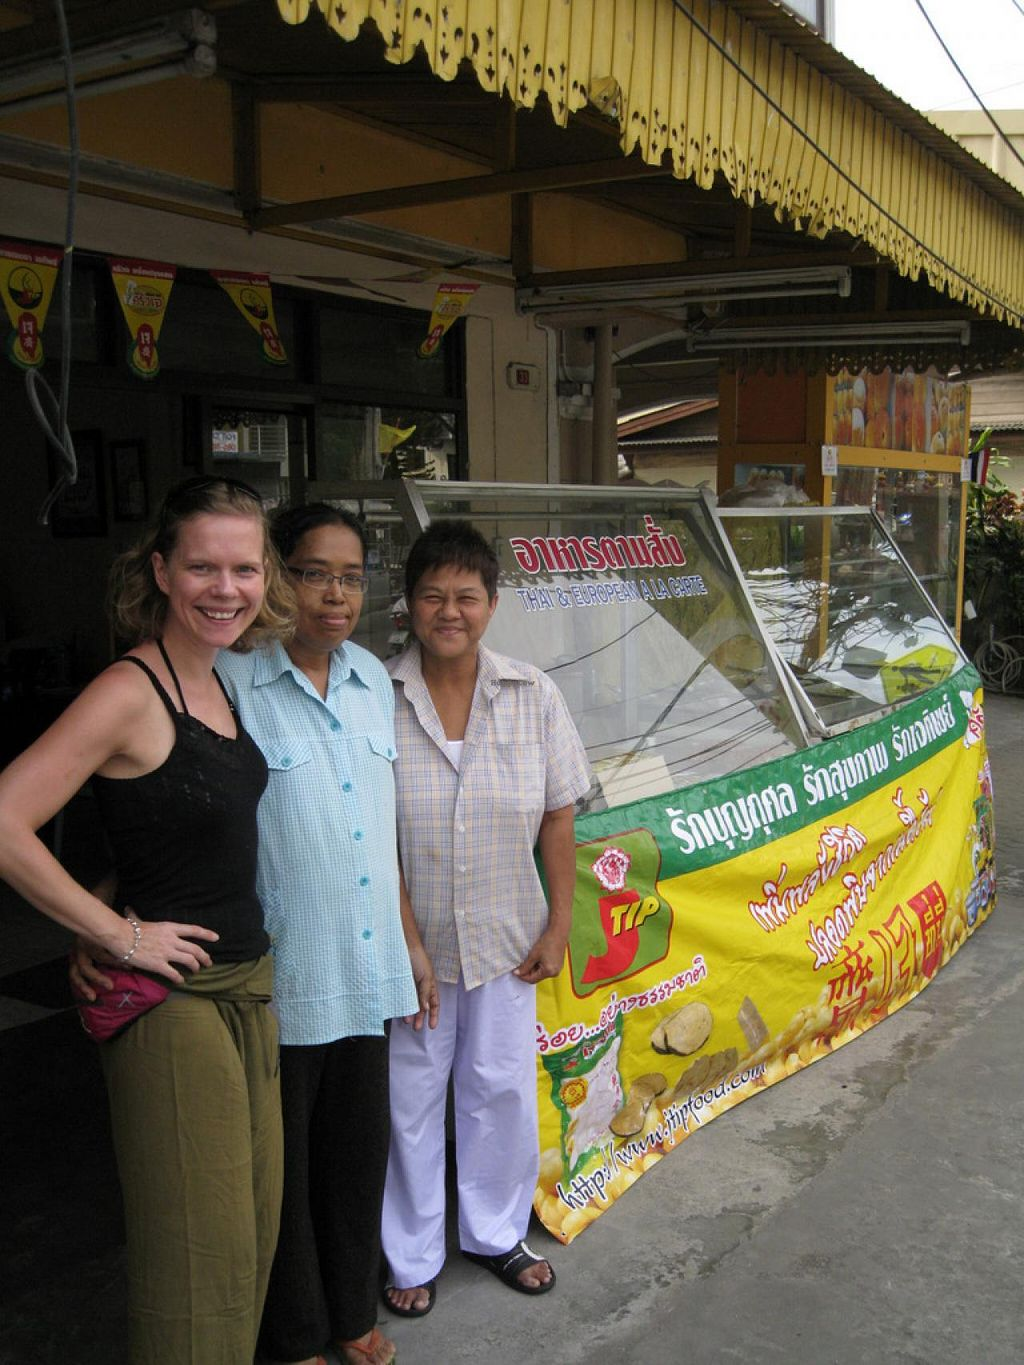 """Photo of Vegetarian Food - Patong  by <a href=""""/members/profile/KasperHansen"""">KasperHansen</a> <br/>They even agreed to get their picture taken outside their shop - maybe you can recognise it easier <br/> January 7, 2014  - <a href='/contact/abuse/image/27964/62028'>Report</a>"""